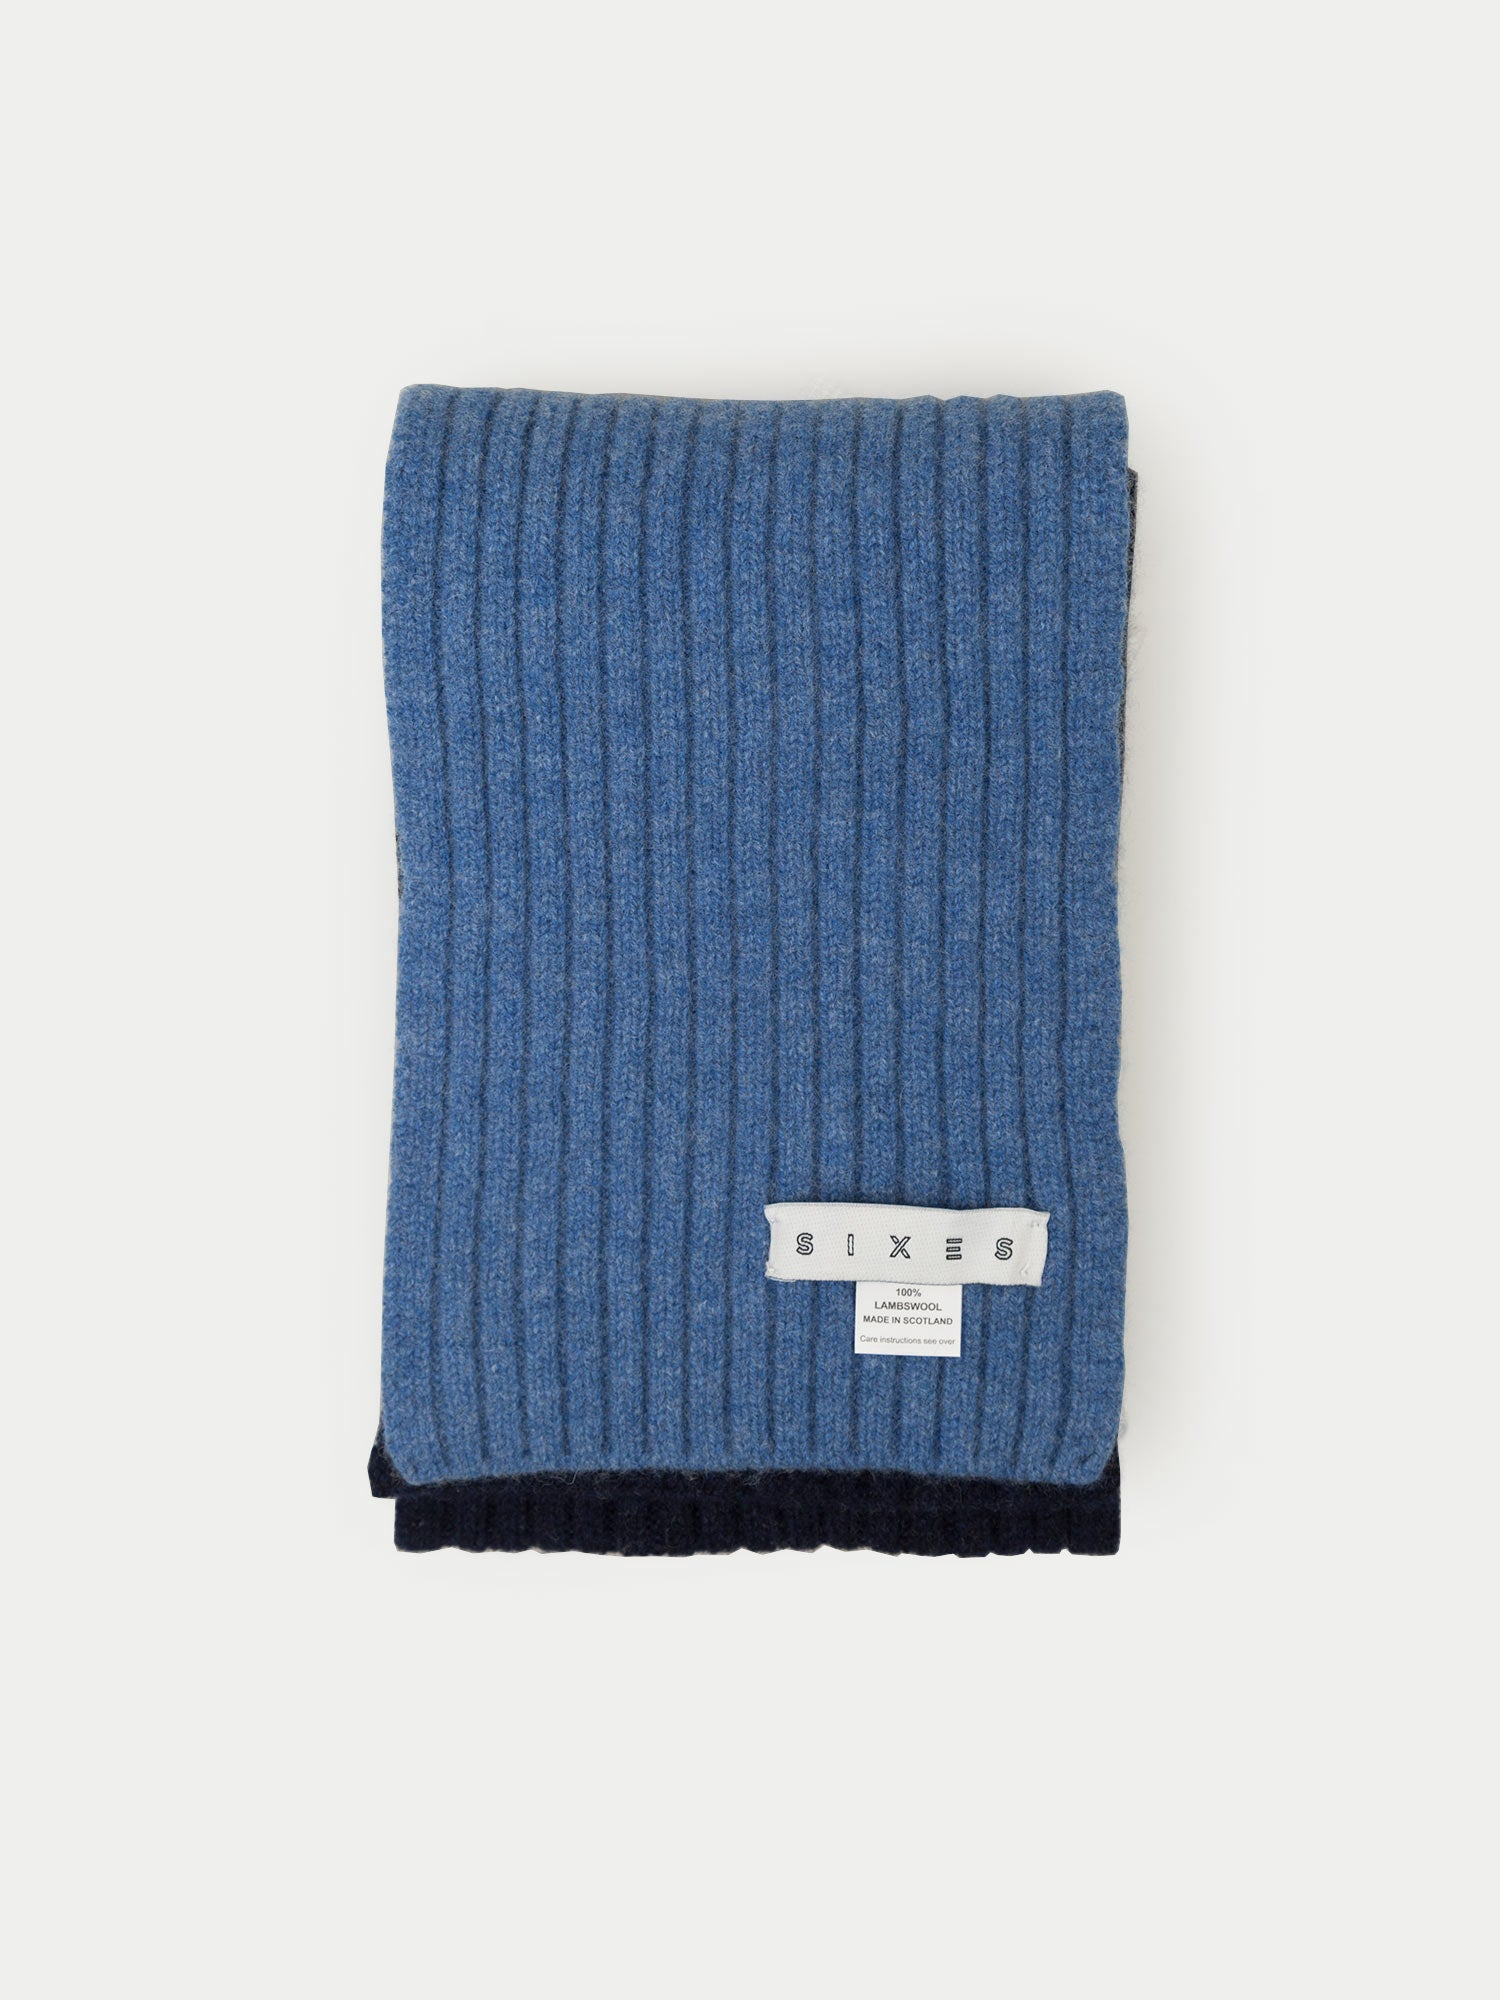 SIXES Lambswool Two Tone Scarf (Blue & Navy)